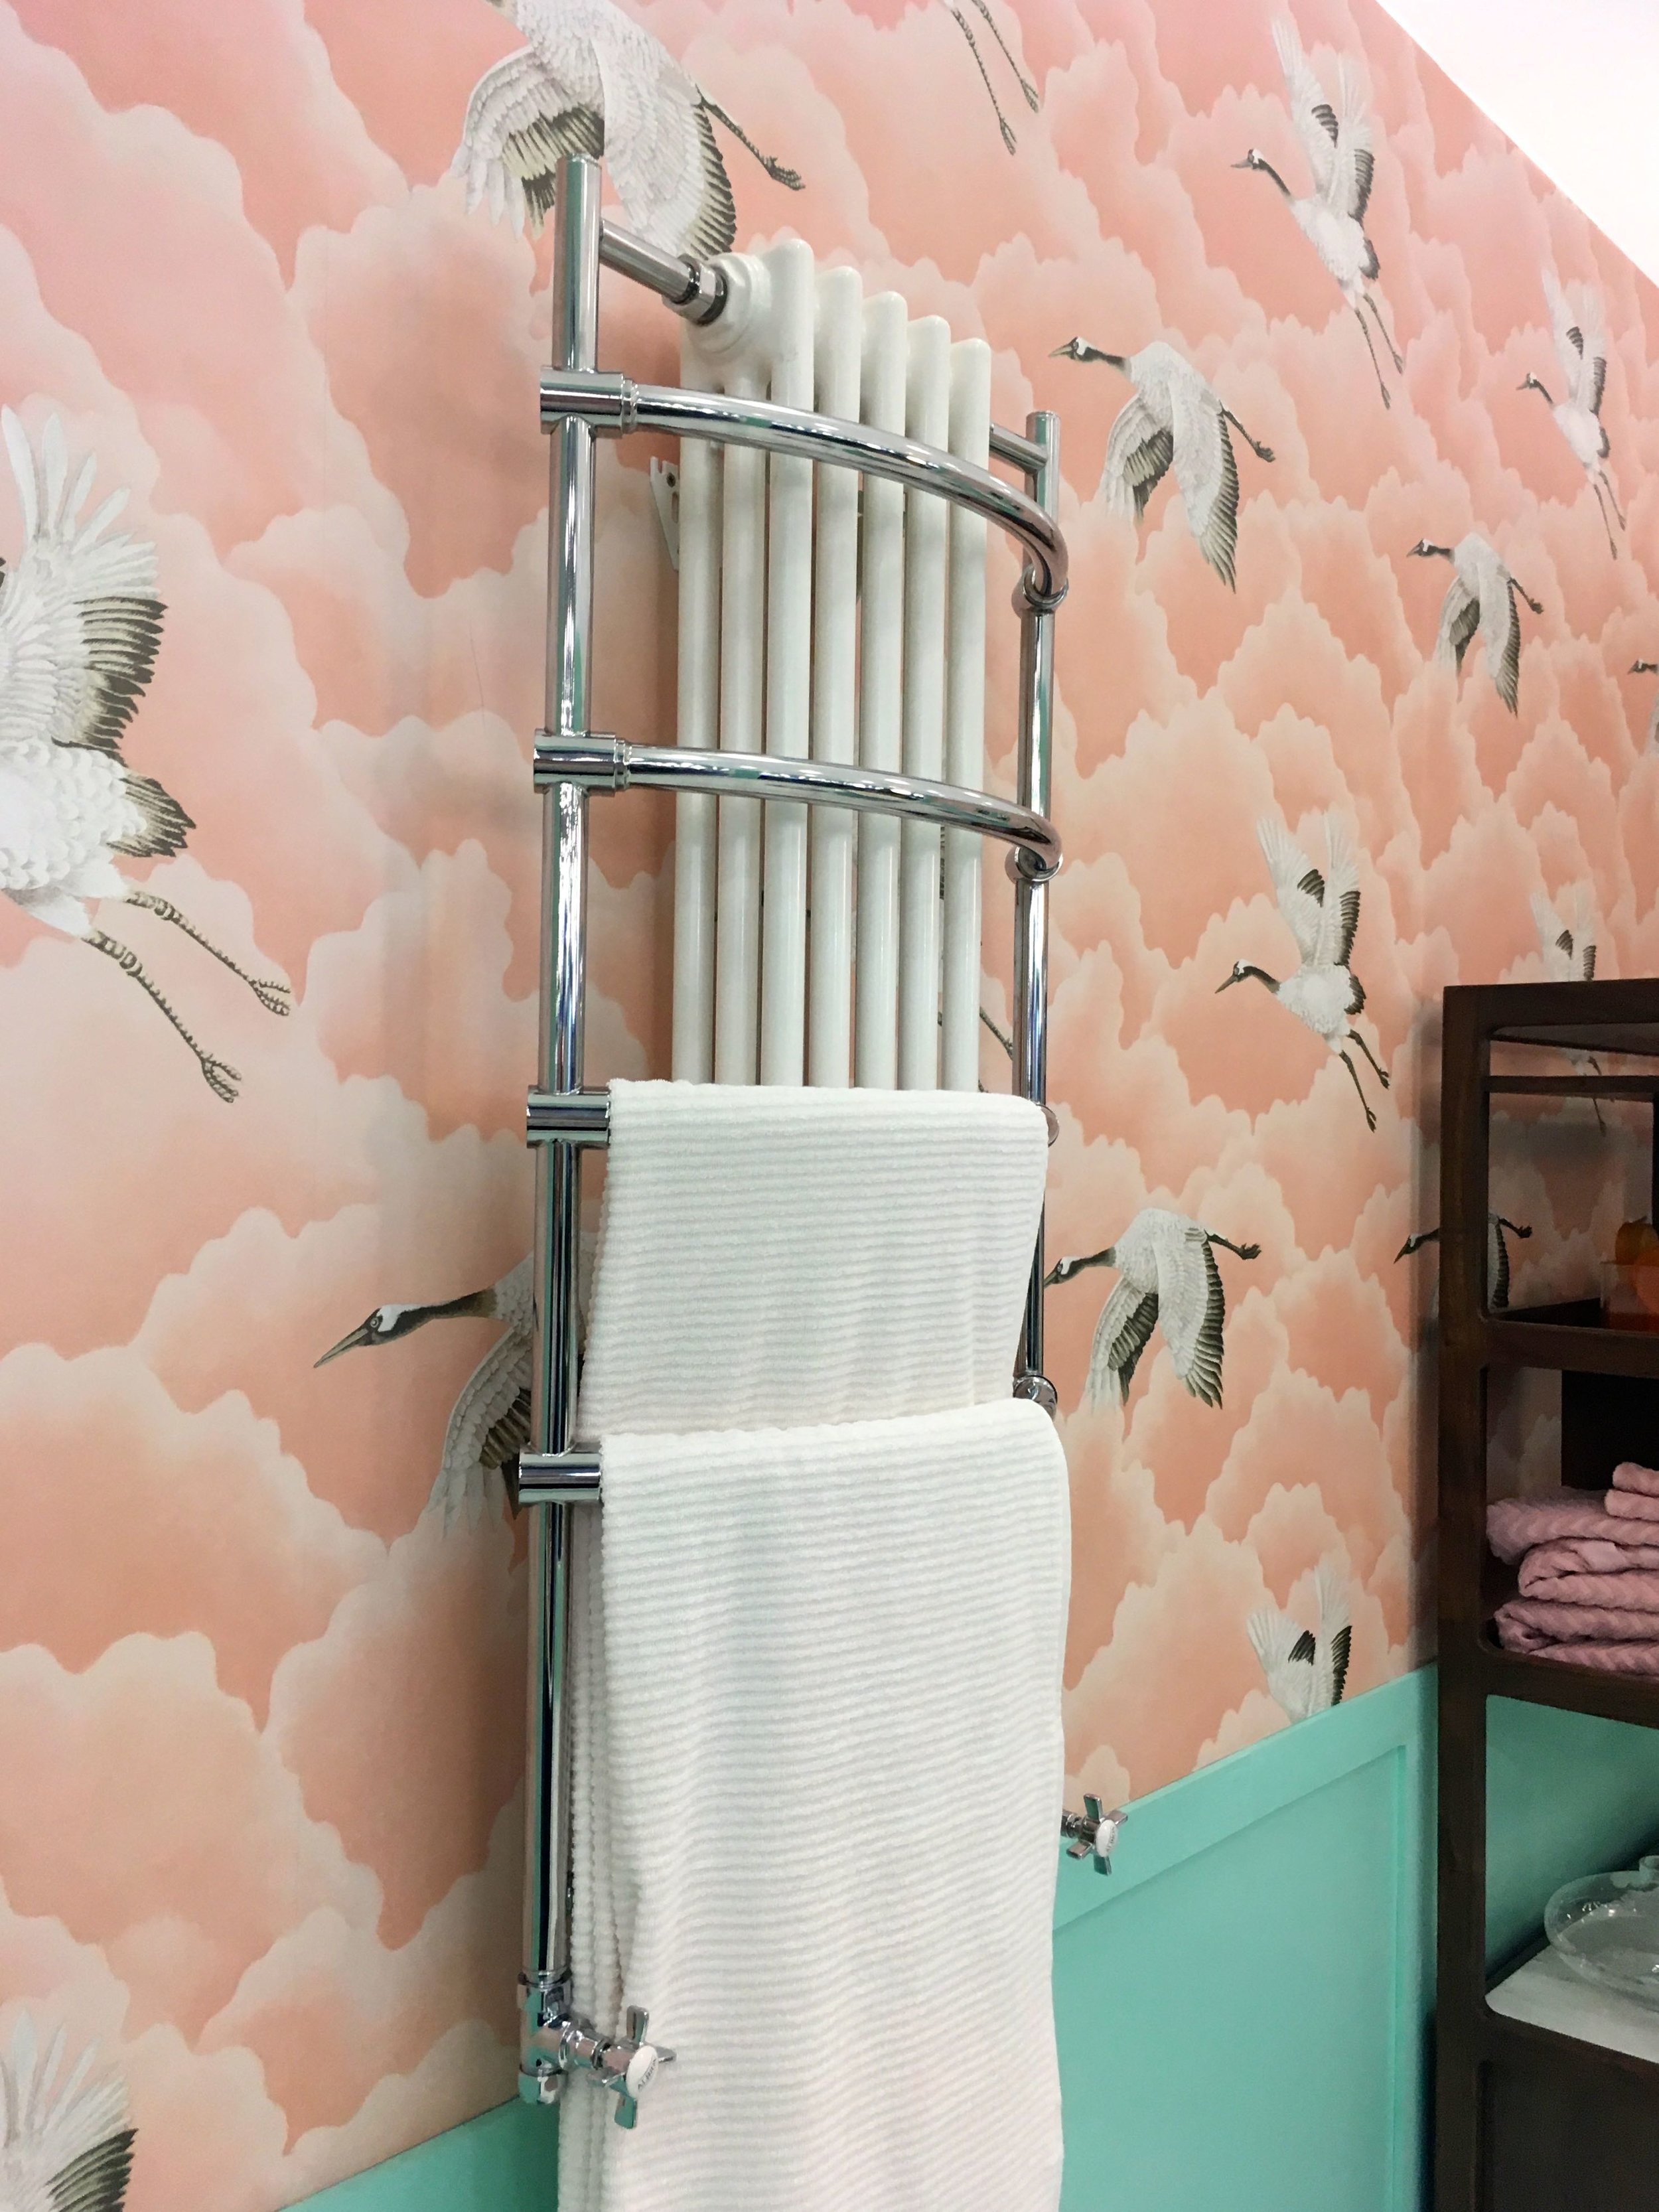 FLYING BIRDS IN THE VINTAGE BATHROOM ROOM SET